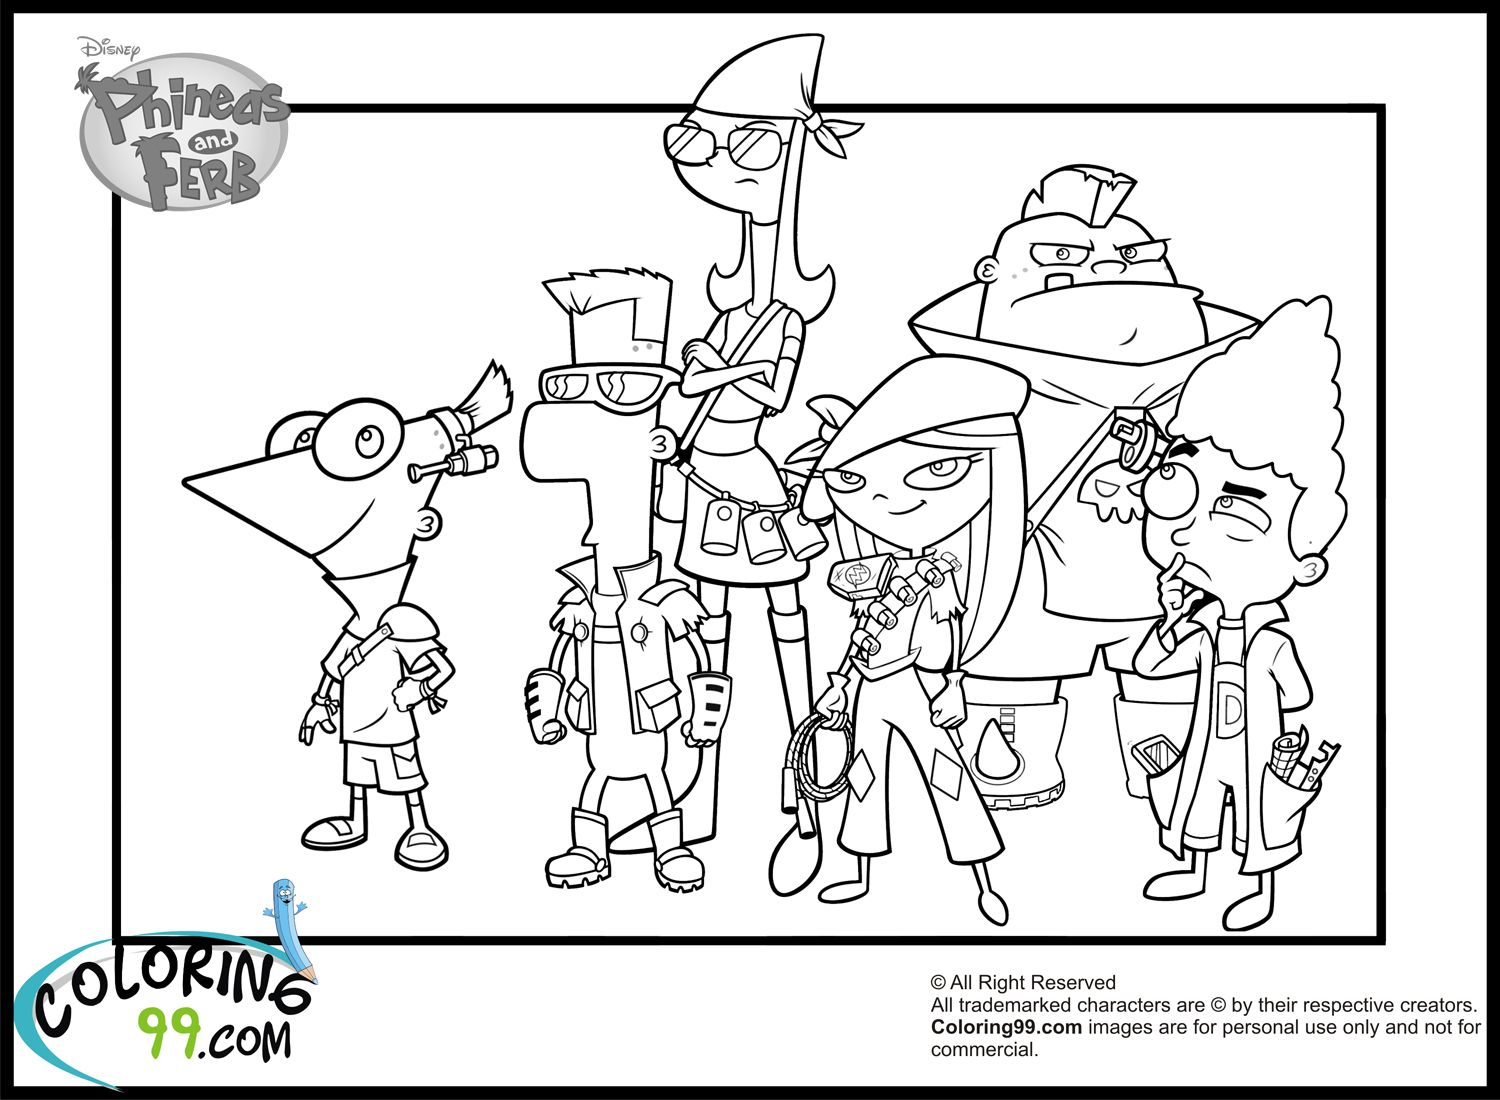 Google Coloring Pages Free Large Images Coloring Pages Phineas And Ferb Star Wars Colors